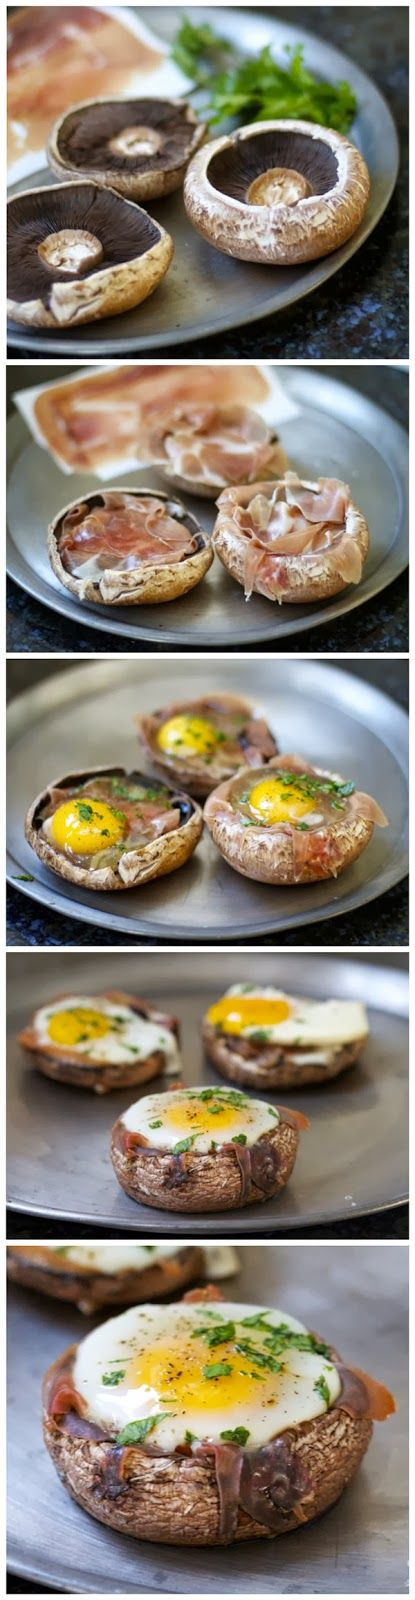 Baked Eggs in Portobello Mushroom Caps - a bit tougher to do in practice. When buying portabellas, make sure to pick ones that will sit flat...